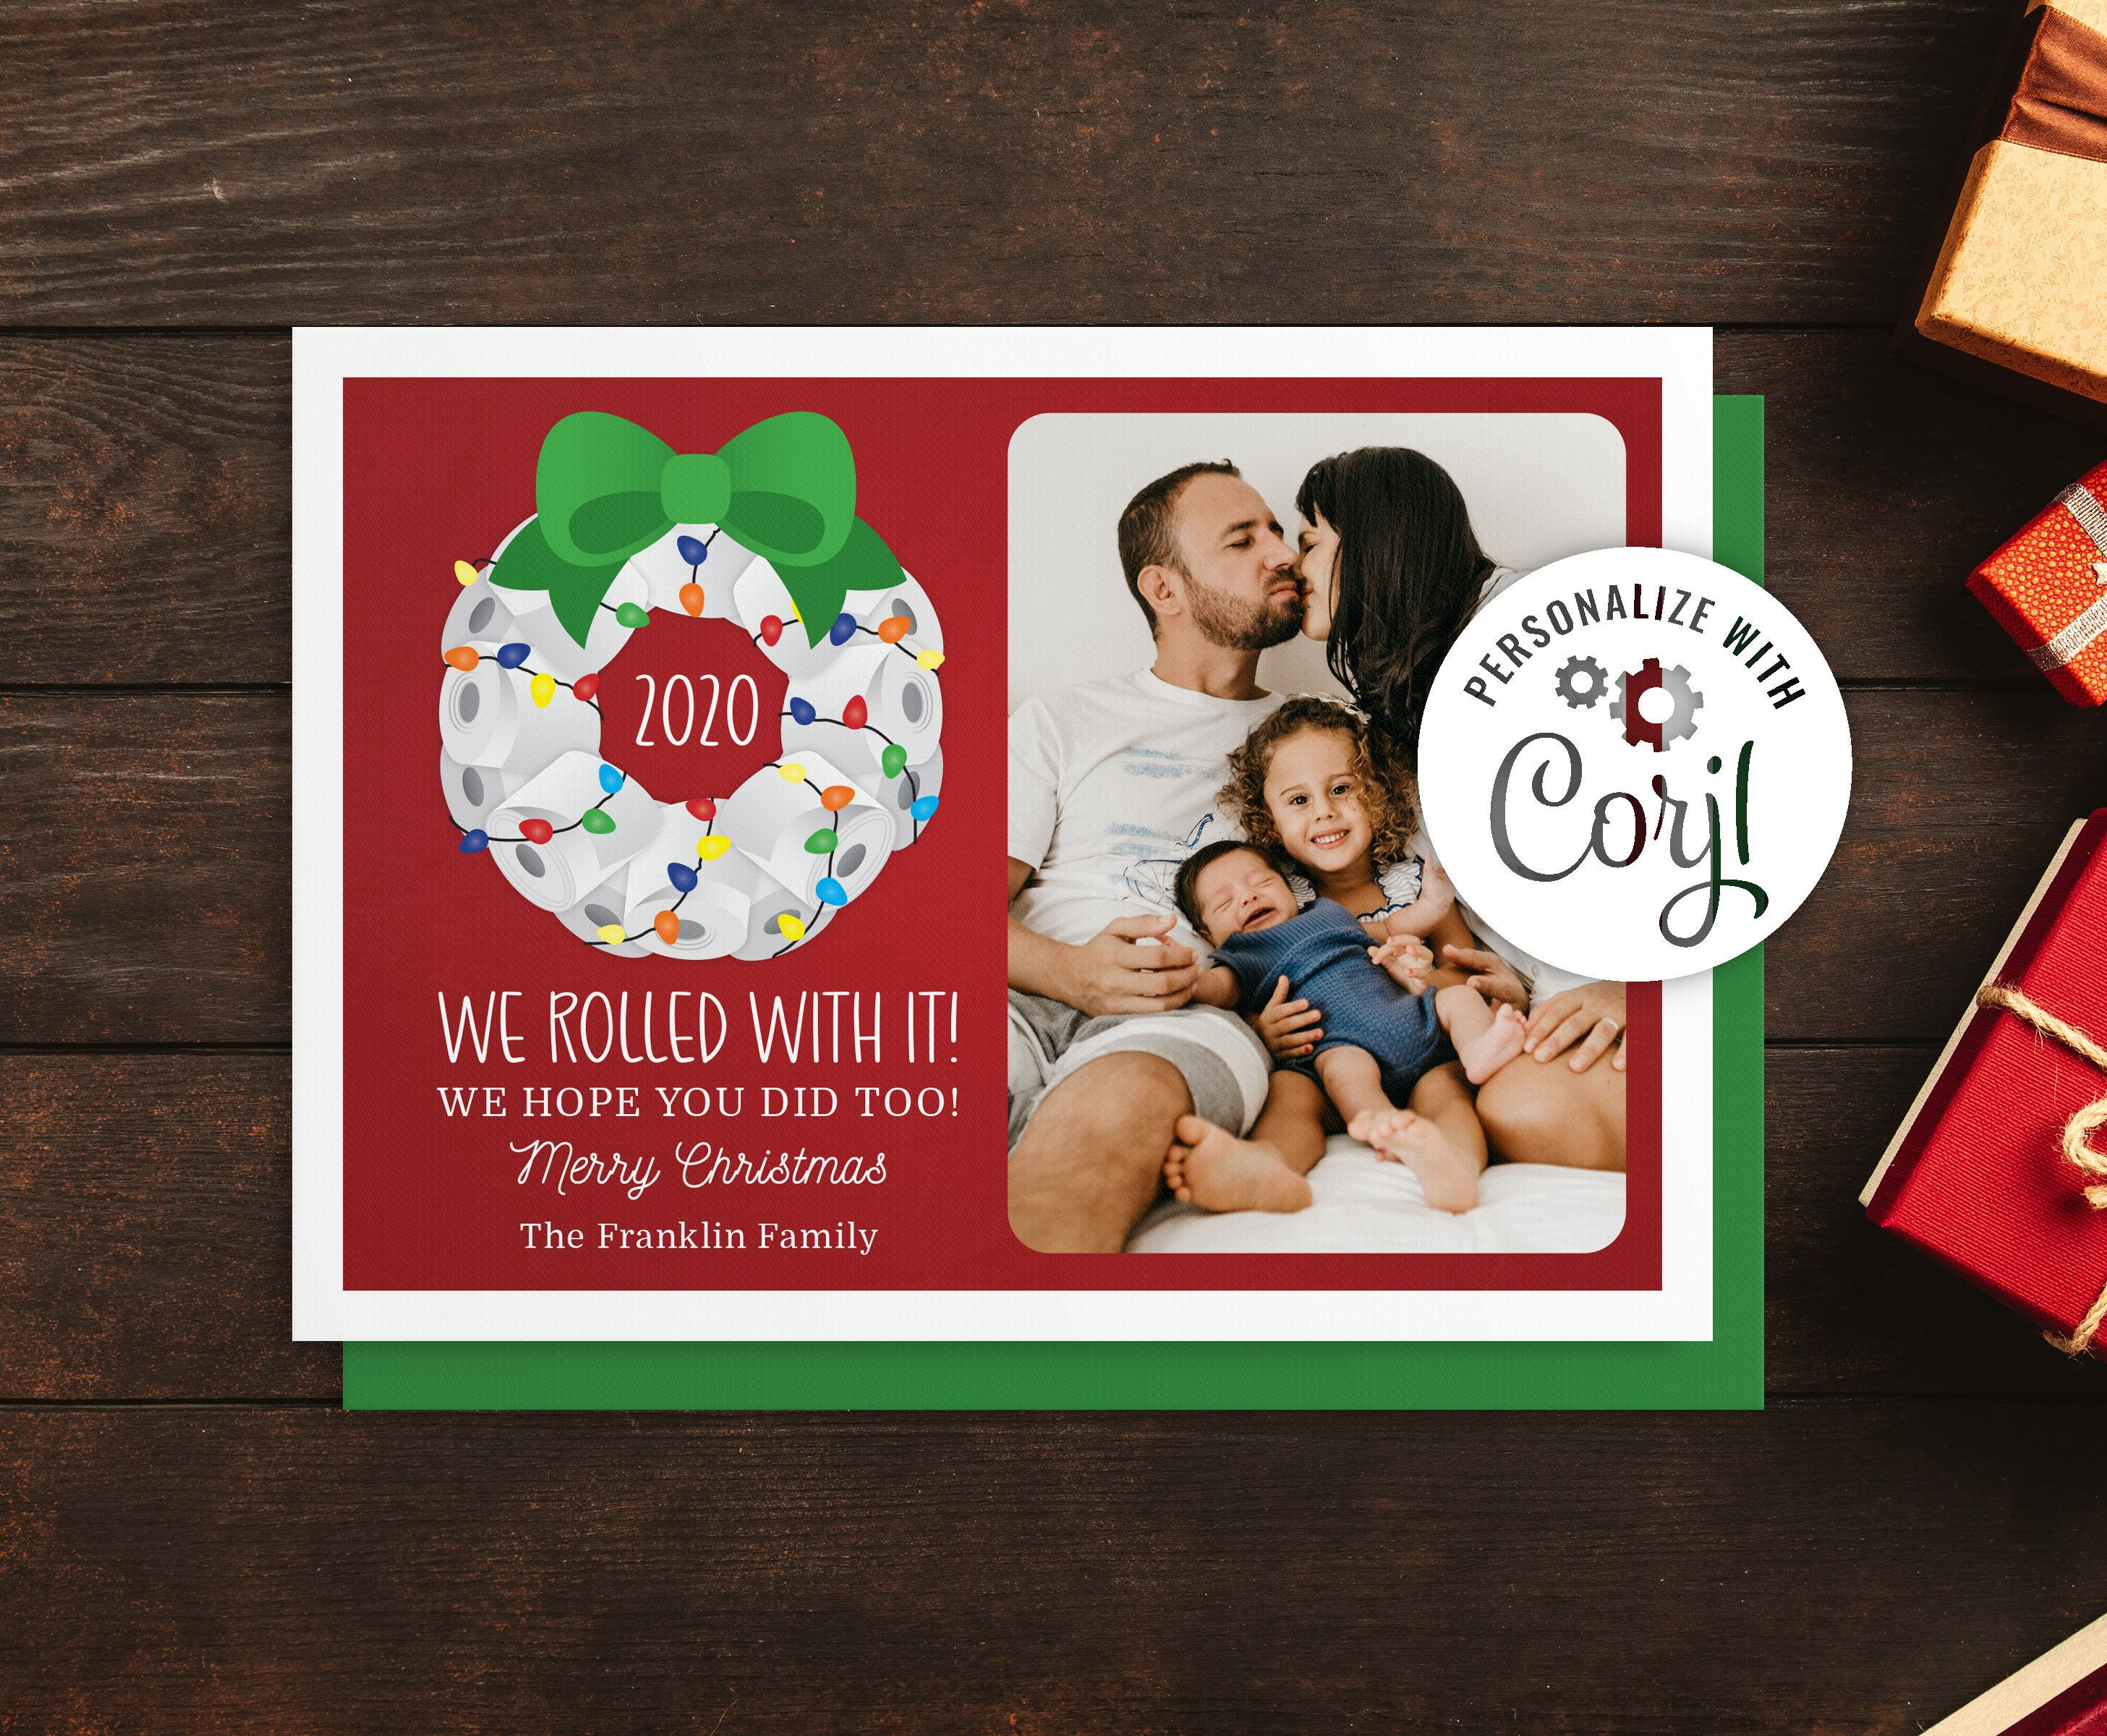 Rolled With It 2020 Christmas Card Funny Christmas Card Etsy Funny Christmas Cards Printable Photo Card Christmas Cards